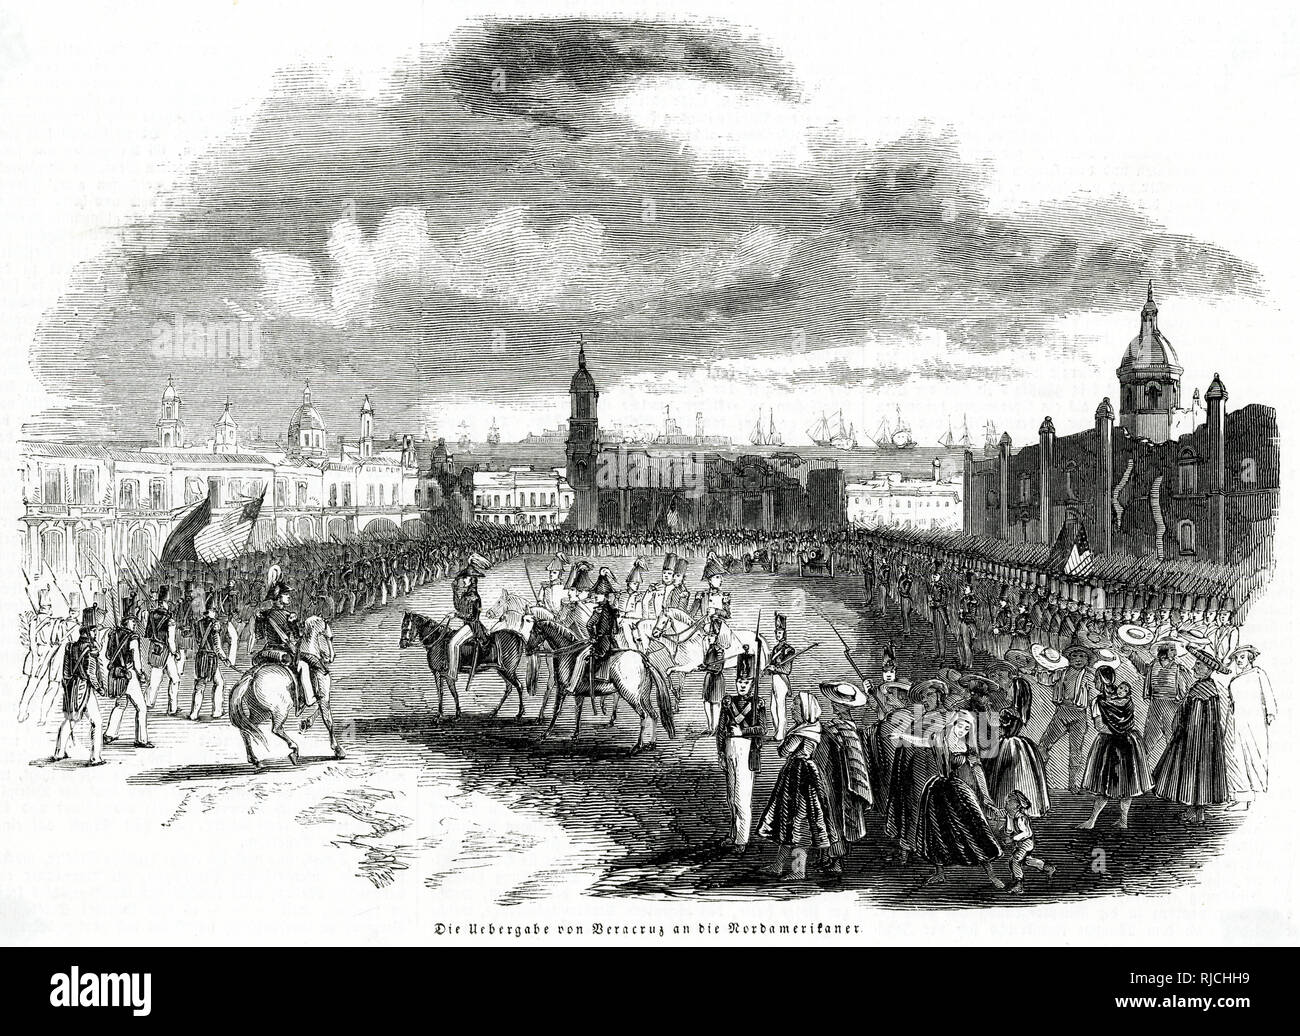 American troops stand in formation across a large square, with soldiers on horseback gathered in the centre to celebrate the successful capture of Veracruz the day previously. A crowd of civilians, stands off to the right looking at the soldiers. This was during the Mexican-American War, with Veracruz being captured by the Americans after a 2 week siege, on 28th March 1847. - Stock Image